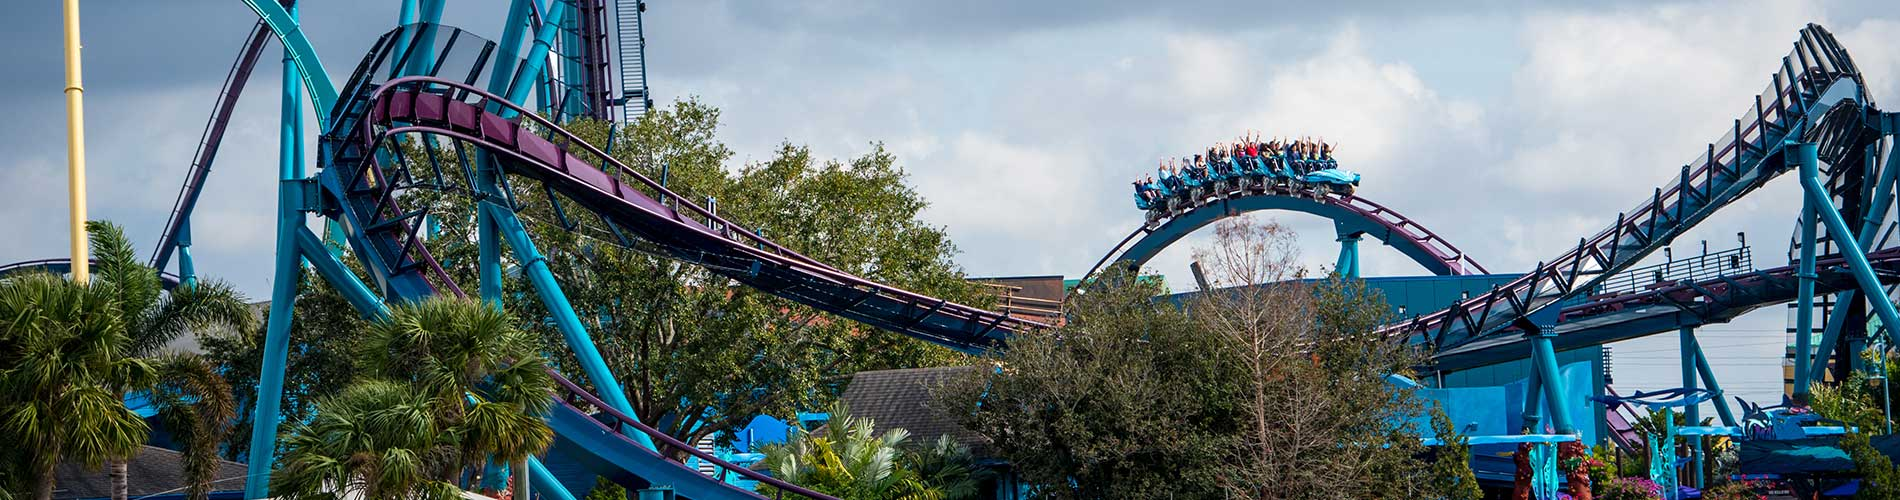 Wide show of Mako at SeaWorld Orlando